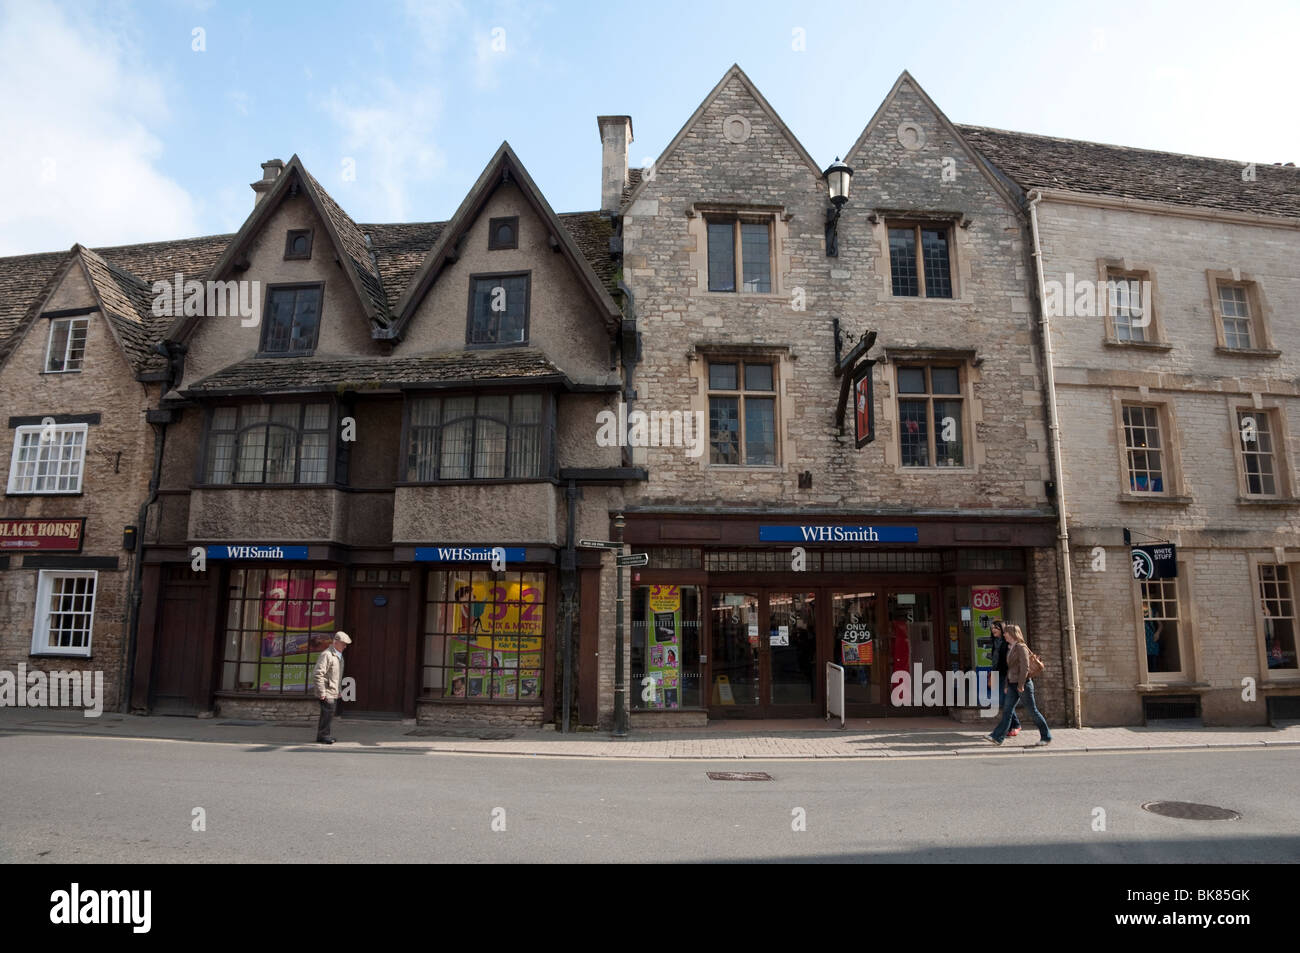 WHSmith or WHS in Cirencester, Cotswolds, Gloucestershire -  stationery shop / store. UK. - Stock Image